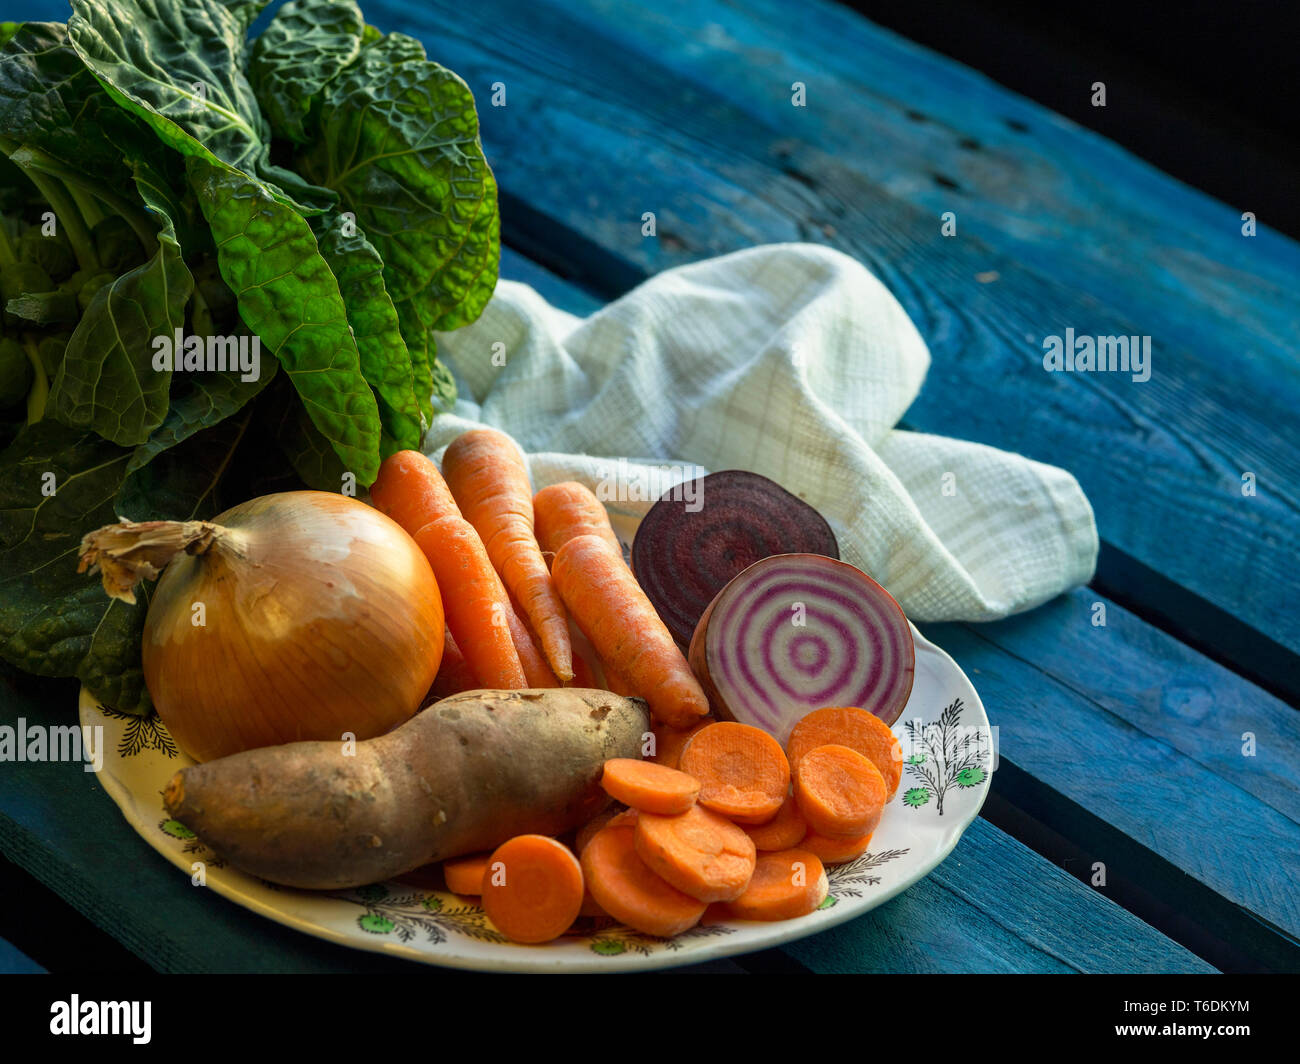 Rustic vegetables on a plate Stock Photo